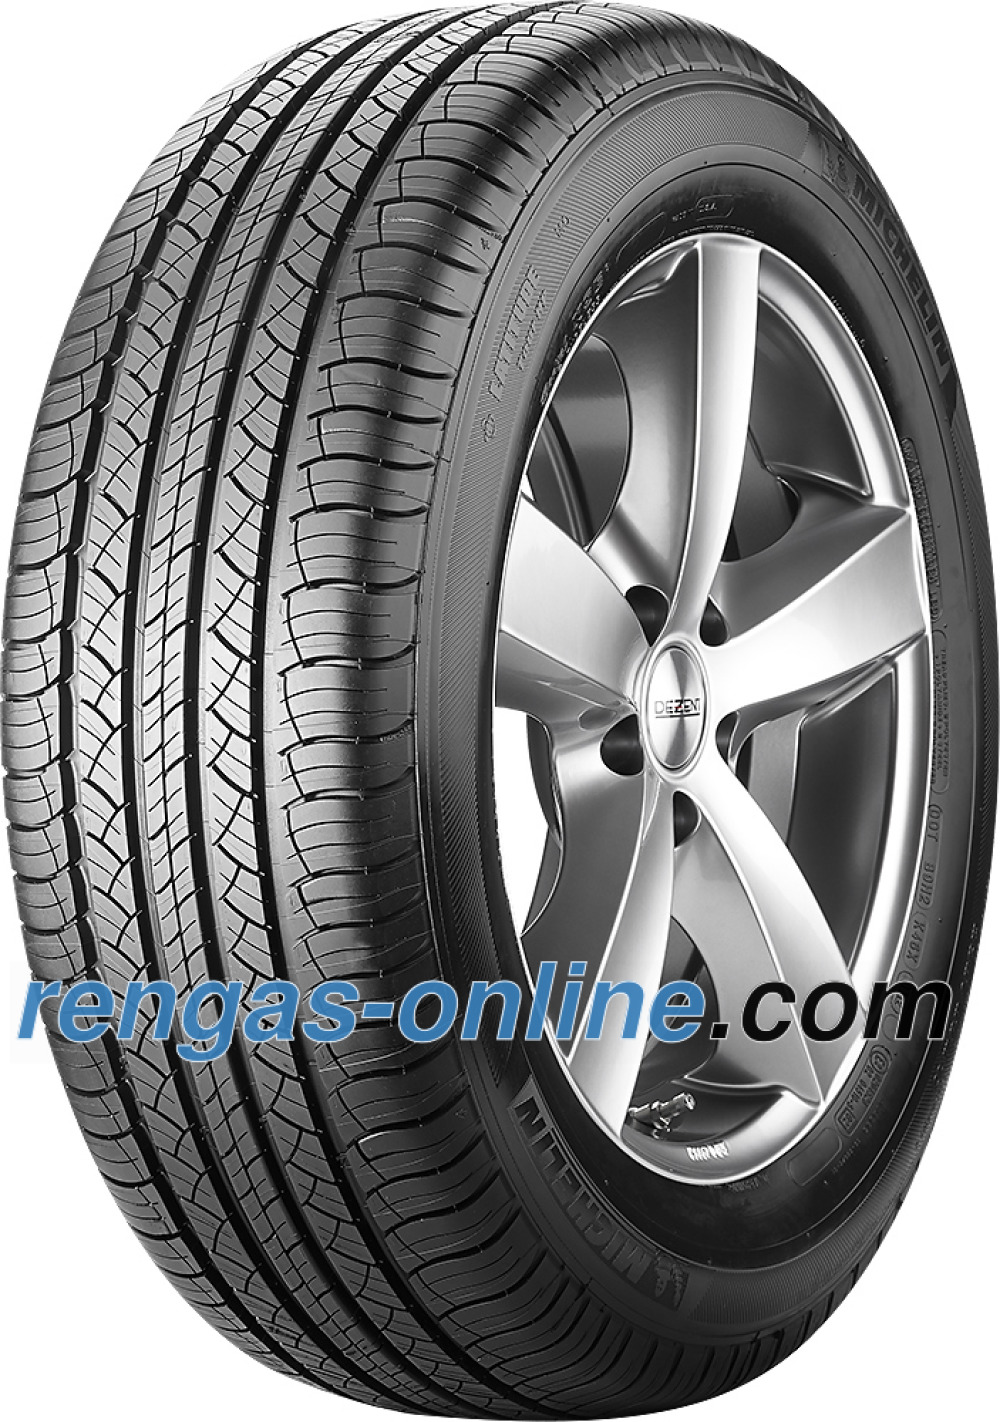 michelin-latitude-tour-hp-23565-r17-104v-grnx-ao